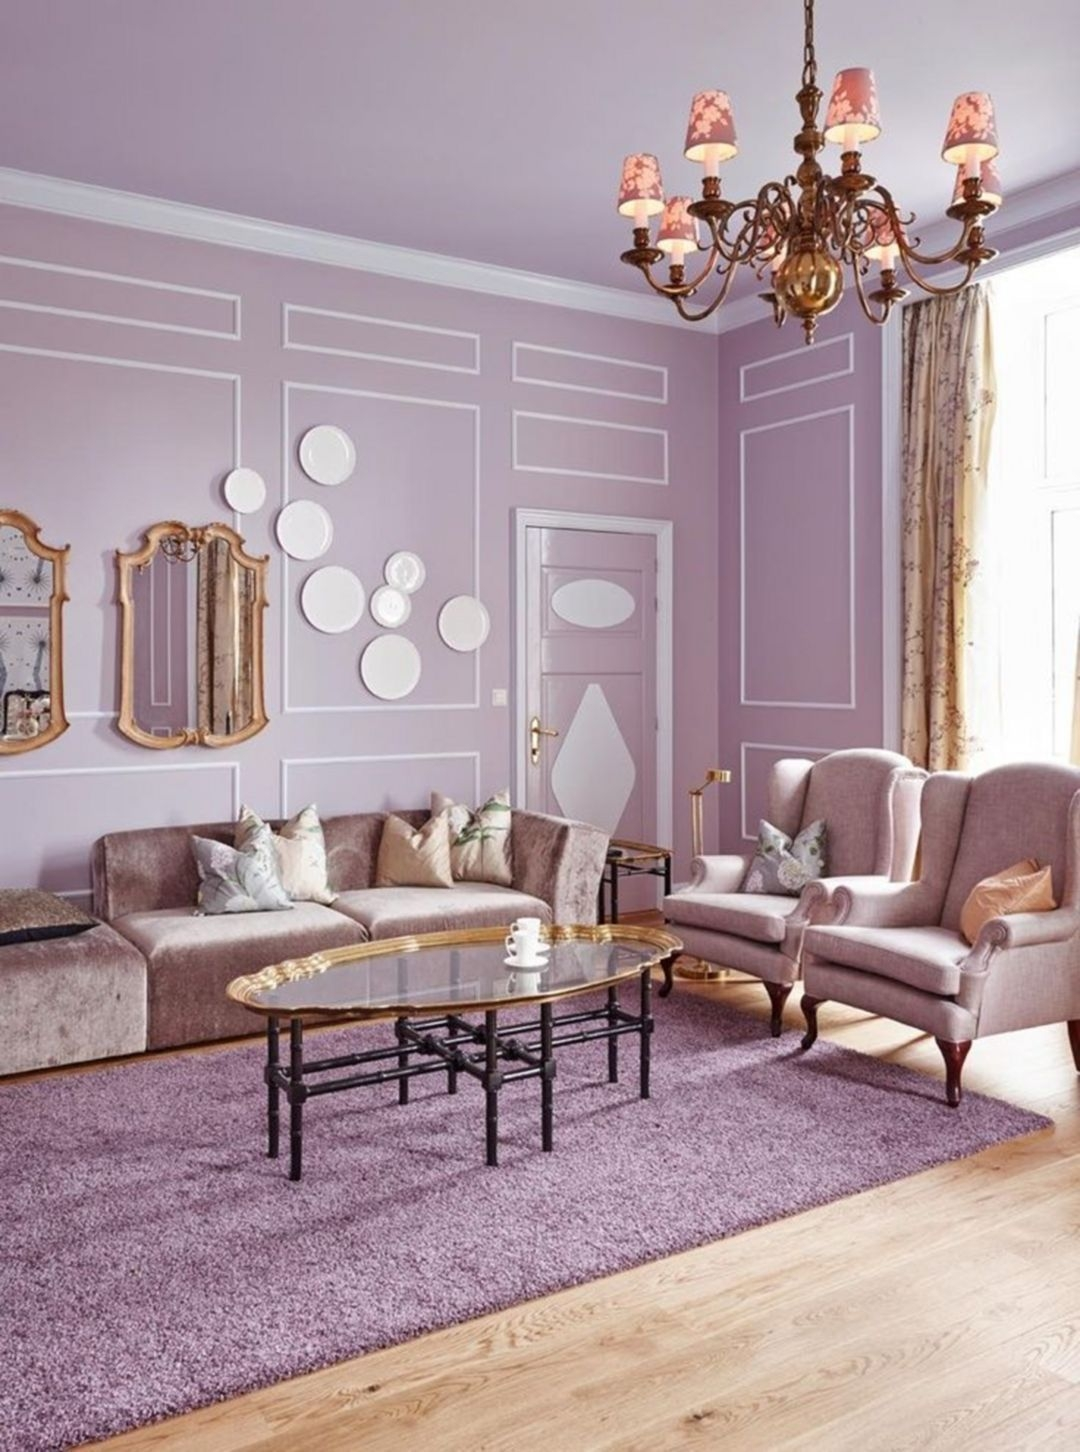 Modern Living Room Ideas With Purple Color Schemes37